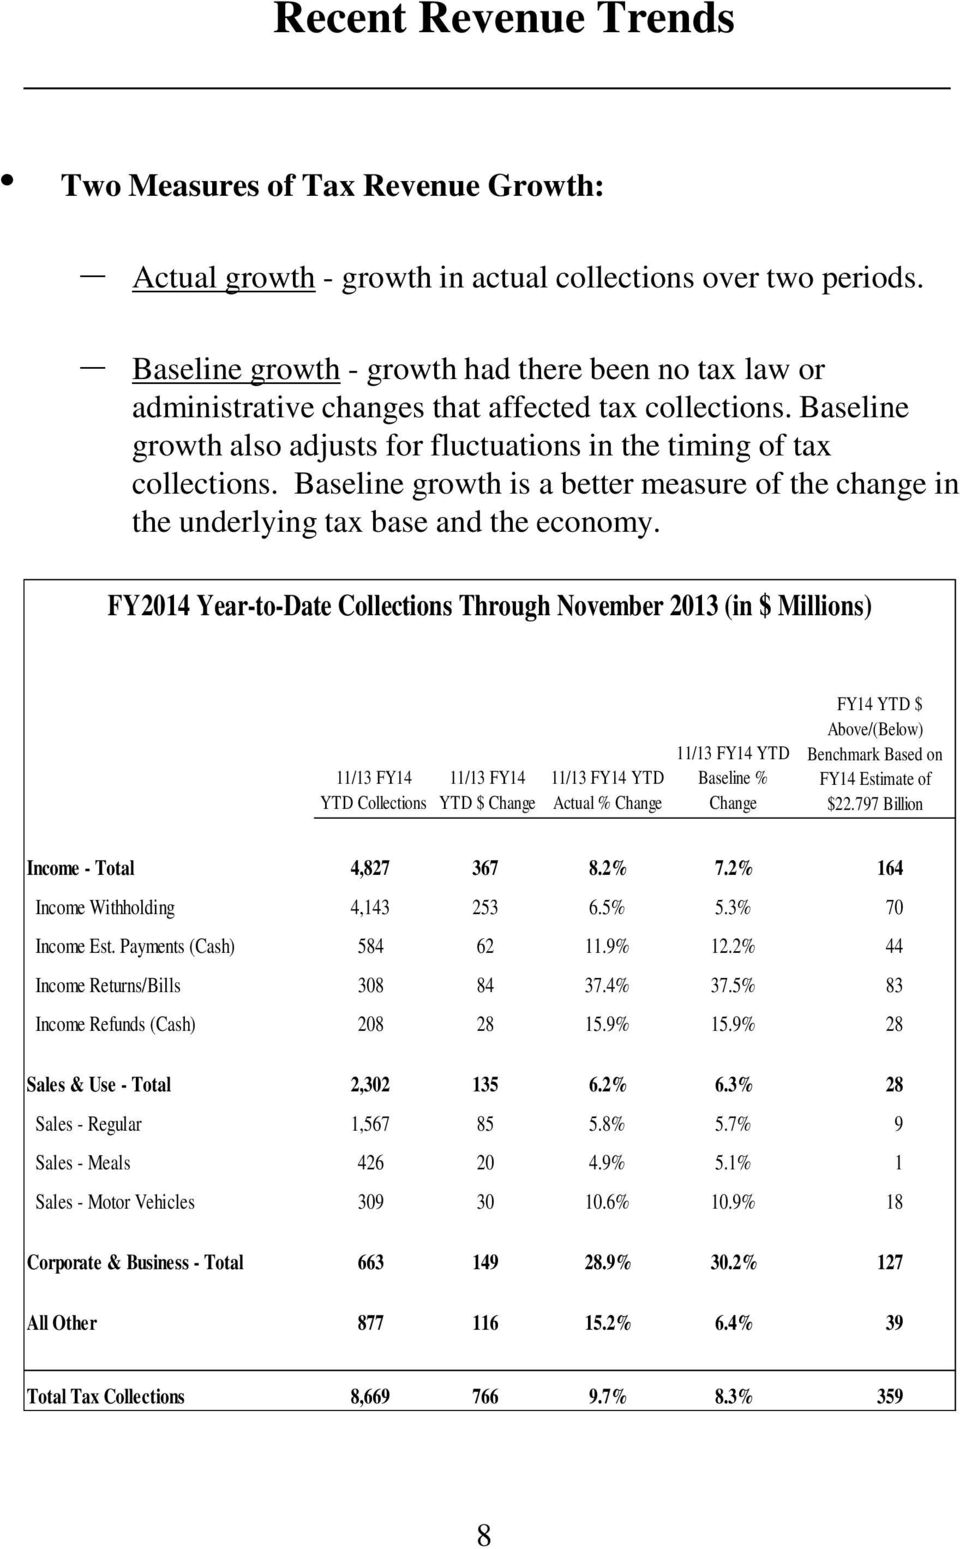 Baseline growth is a better measure of the change in the underlying tax base and the economy.